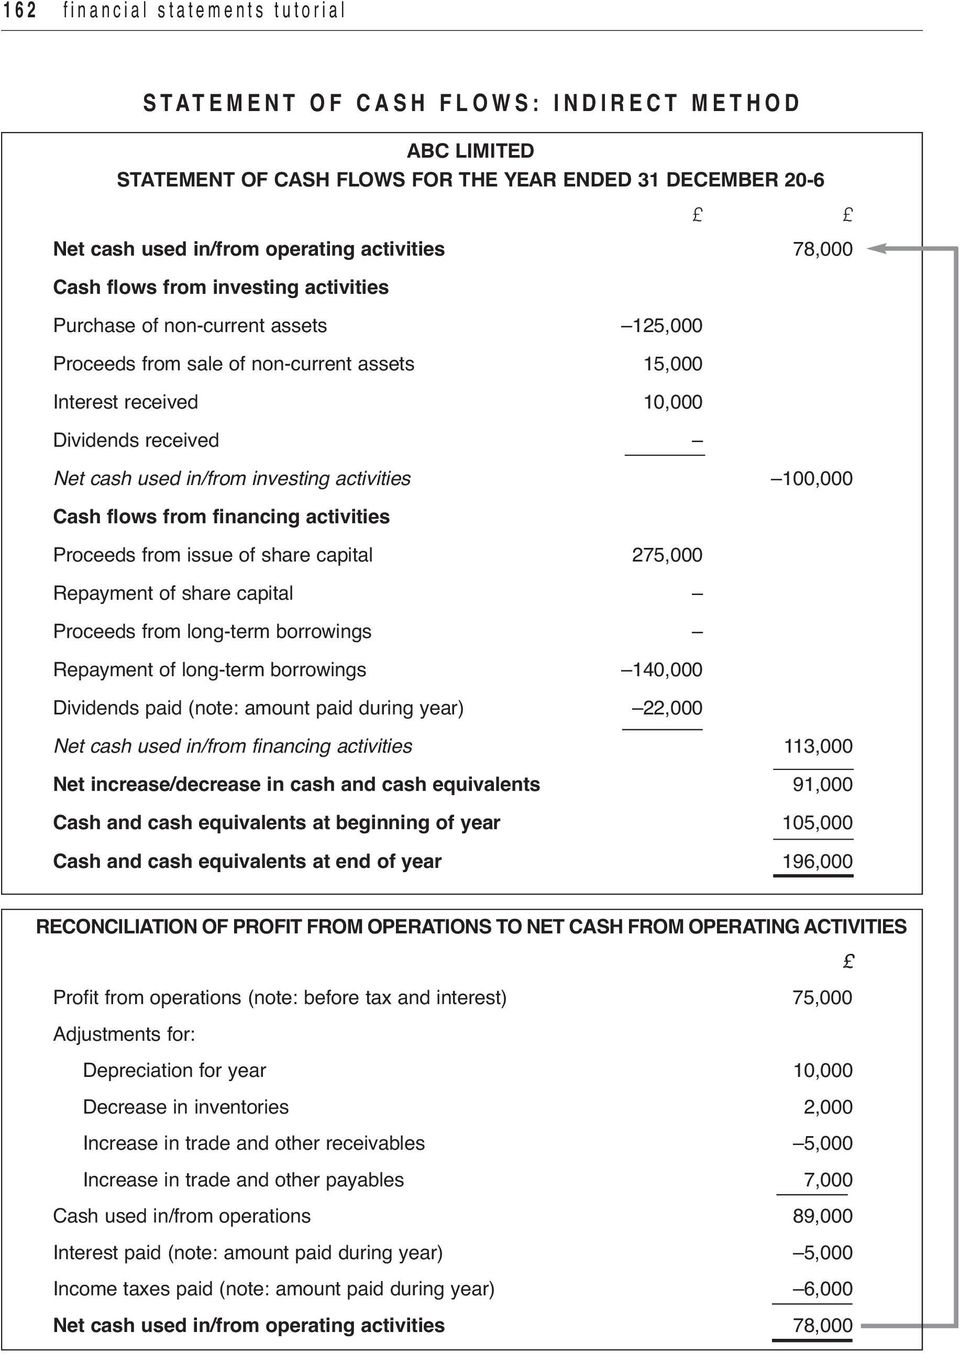 Net cash used i/from ivestig activities 100,000 cash flows from fiacig activities Proceeds from issue of share capital 275,000 Repaymet of share capital Proceeds from log-term borrowigs Repaymet of